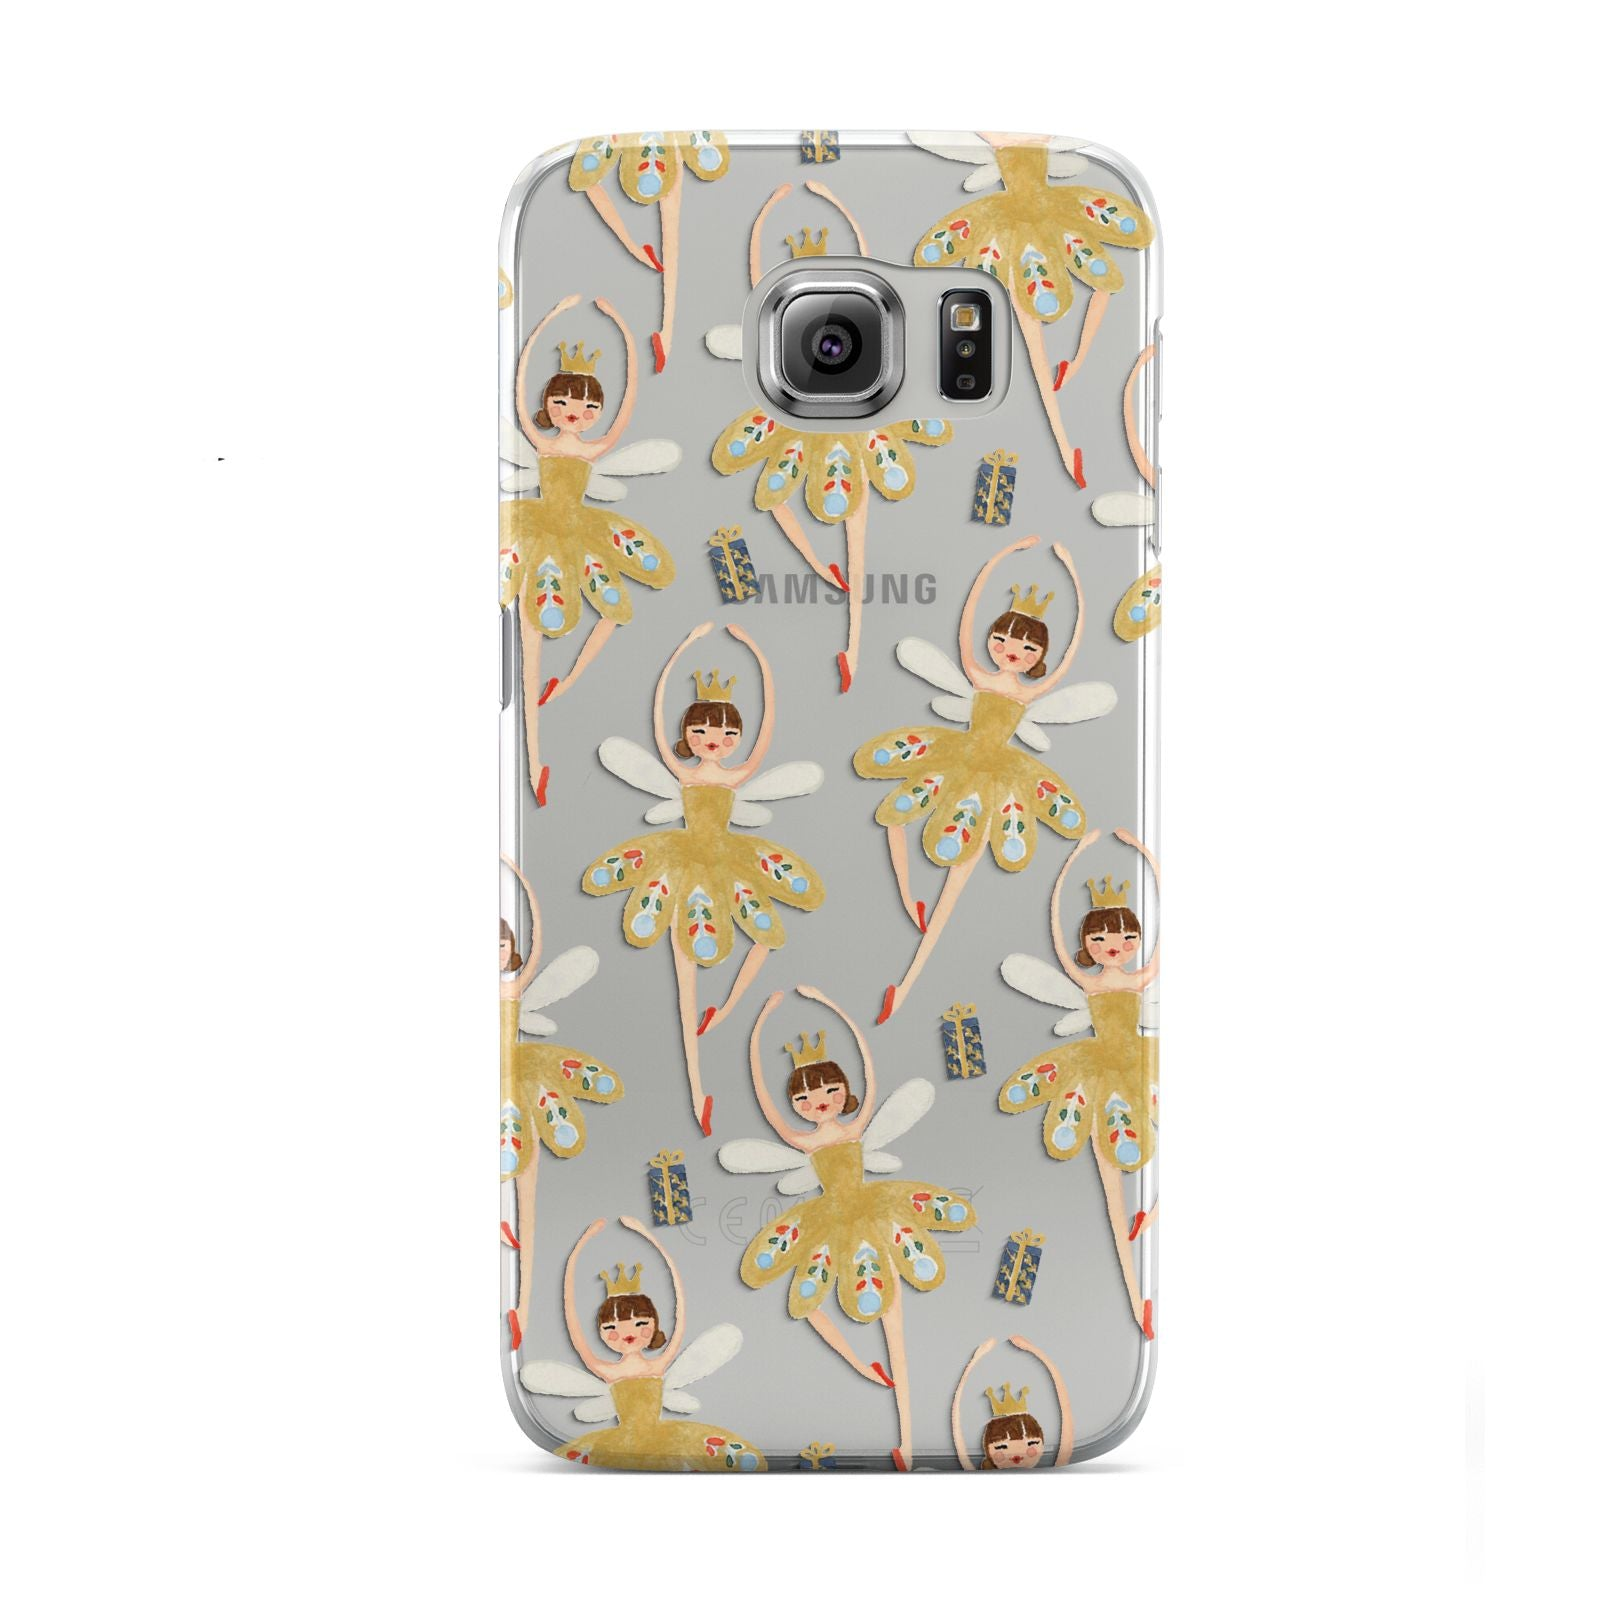 Dancing ballerina princess Samsung Galaxy S6 Case